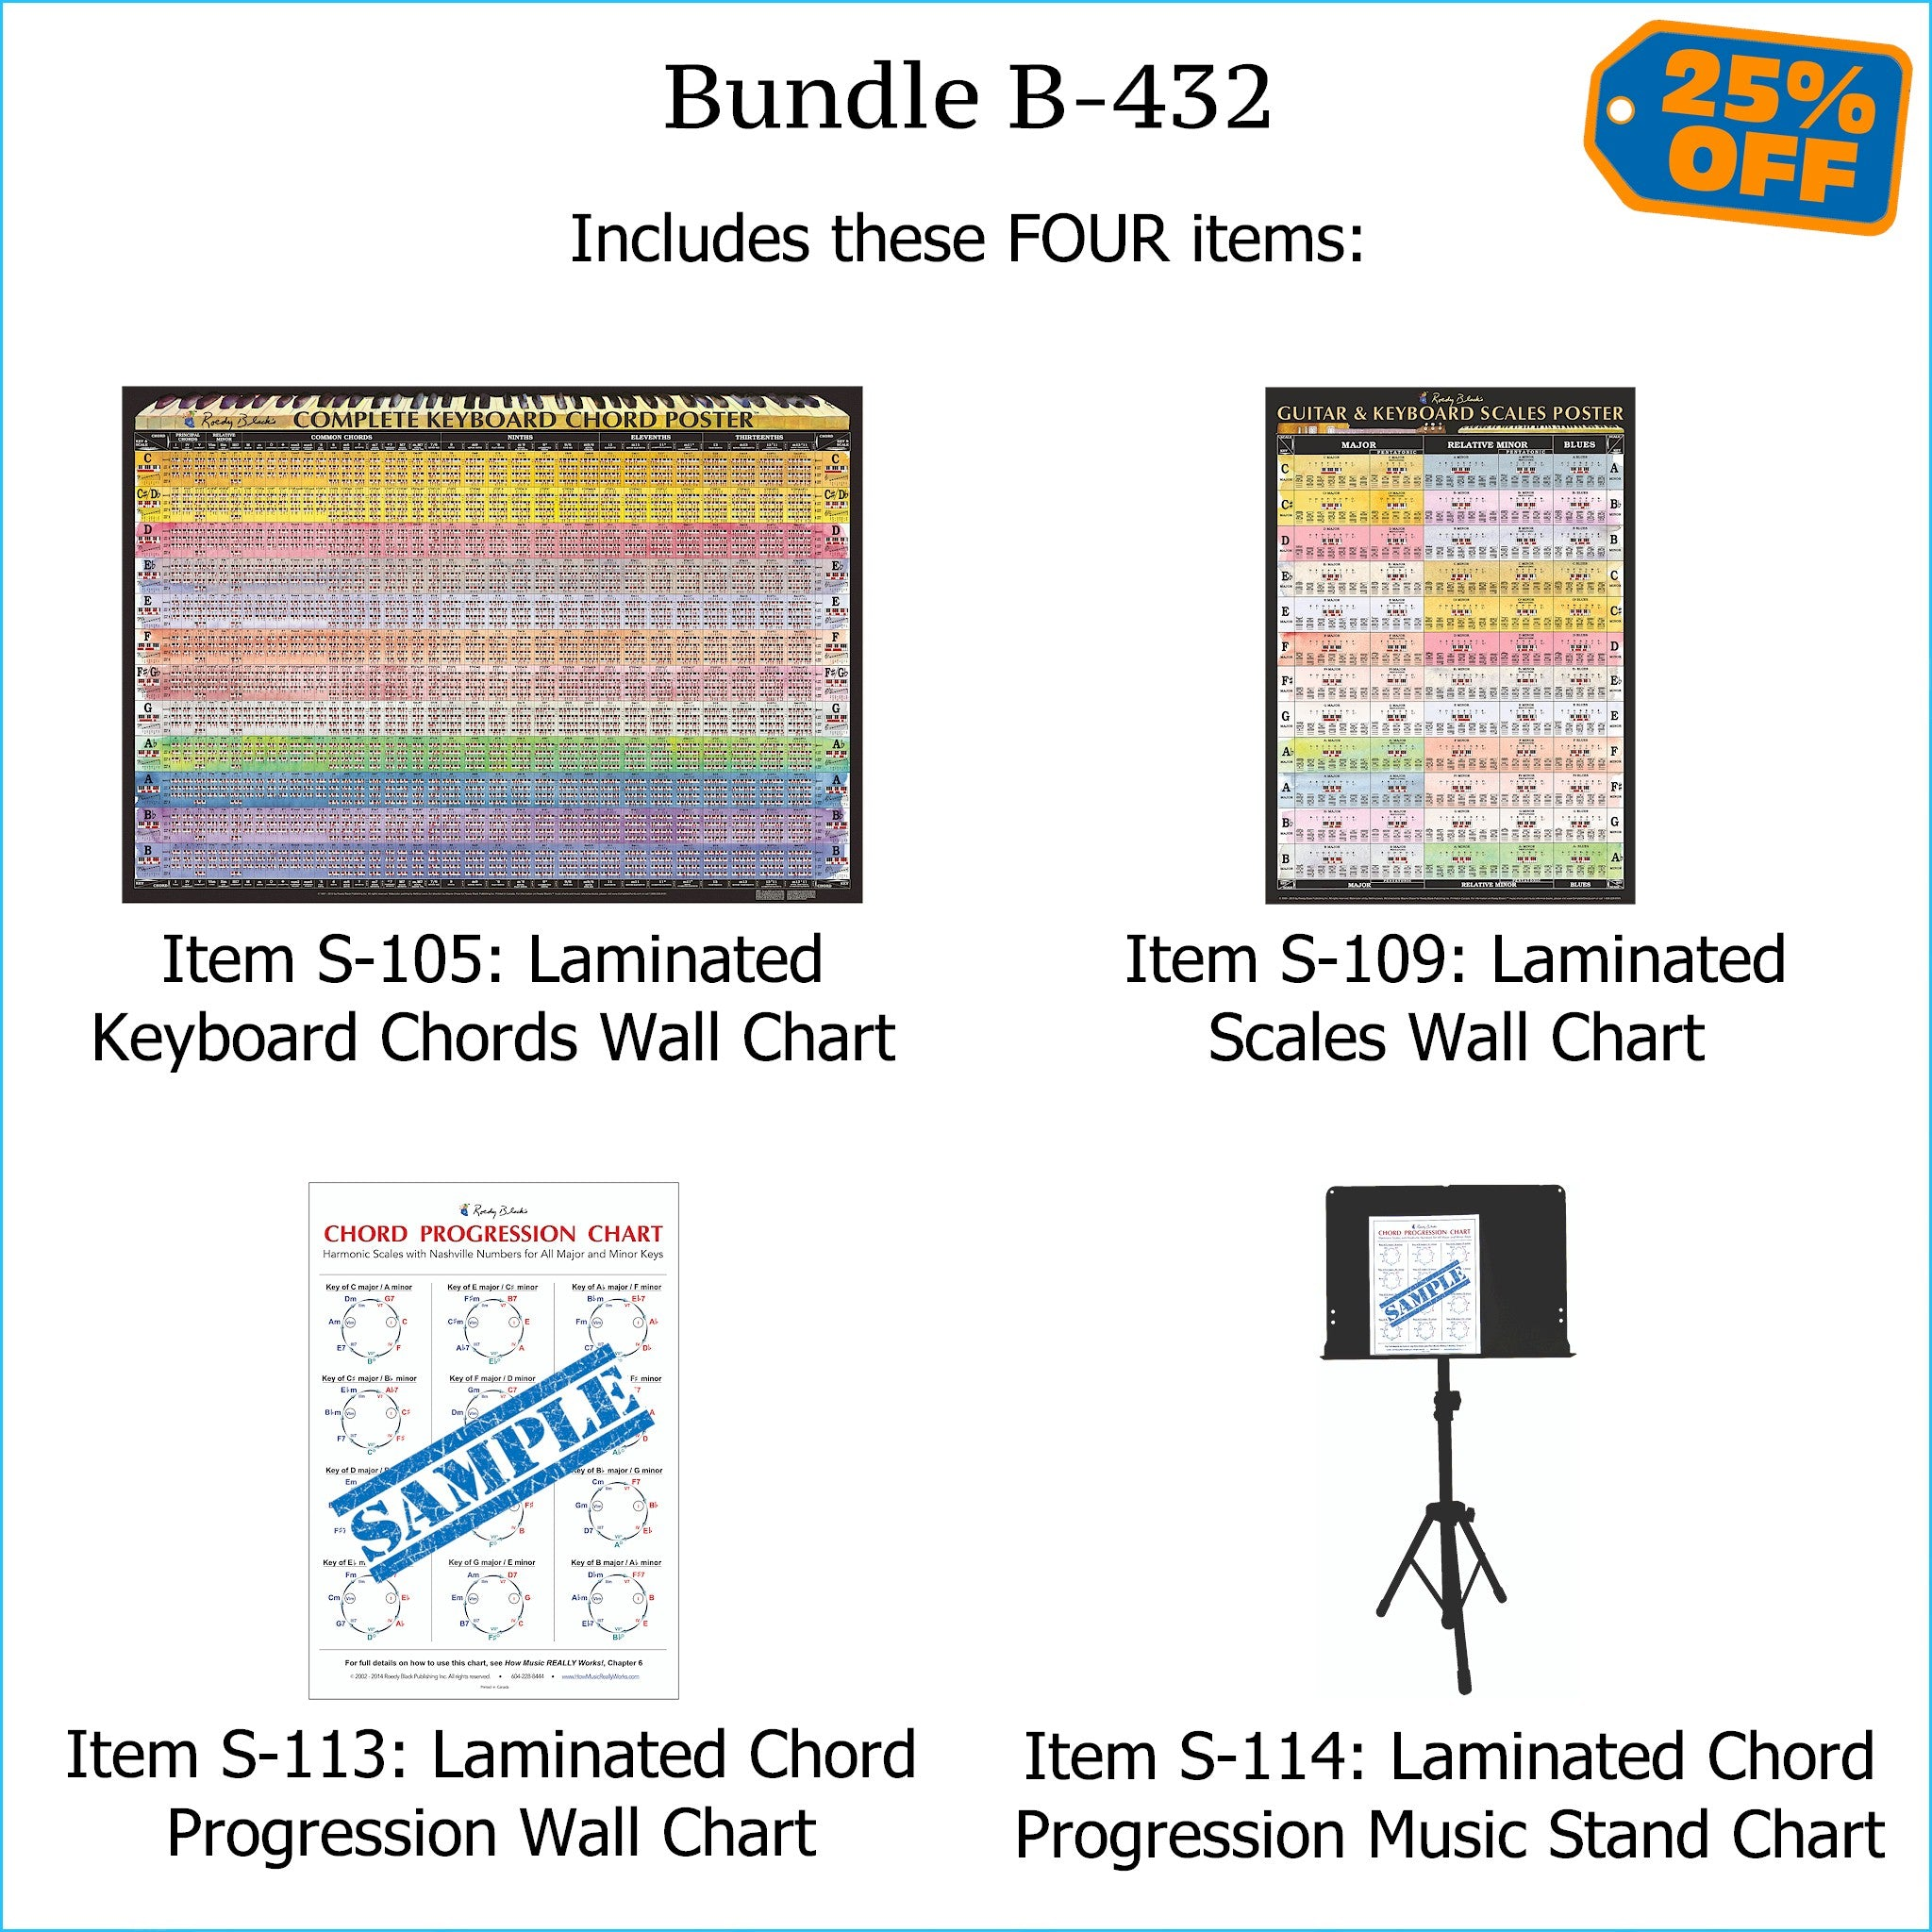 Bundle B-432: THREE Laminated Wall Posters: Complete Keyboard Chords, Scales, & Chord Progressions. FREE SHIPPING – USA & Canada.